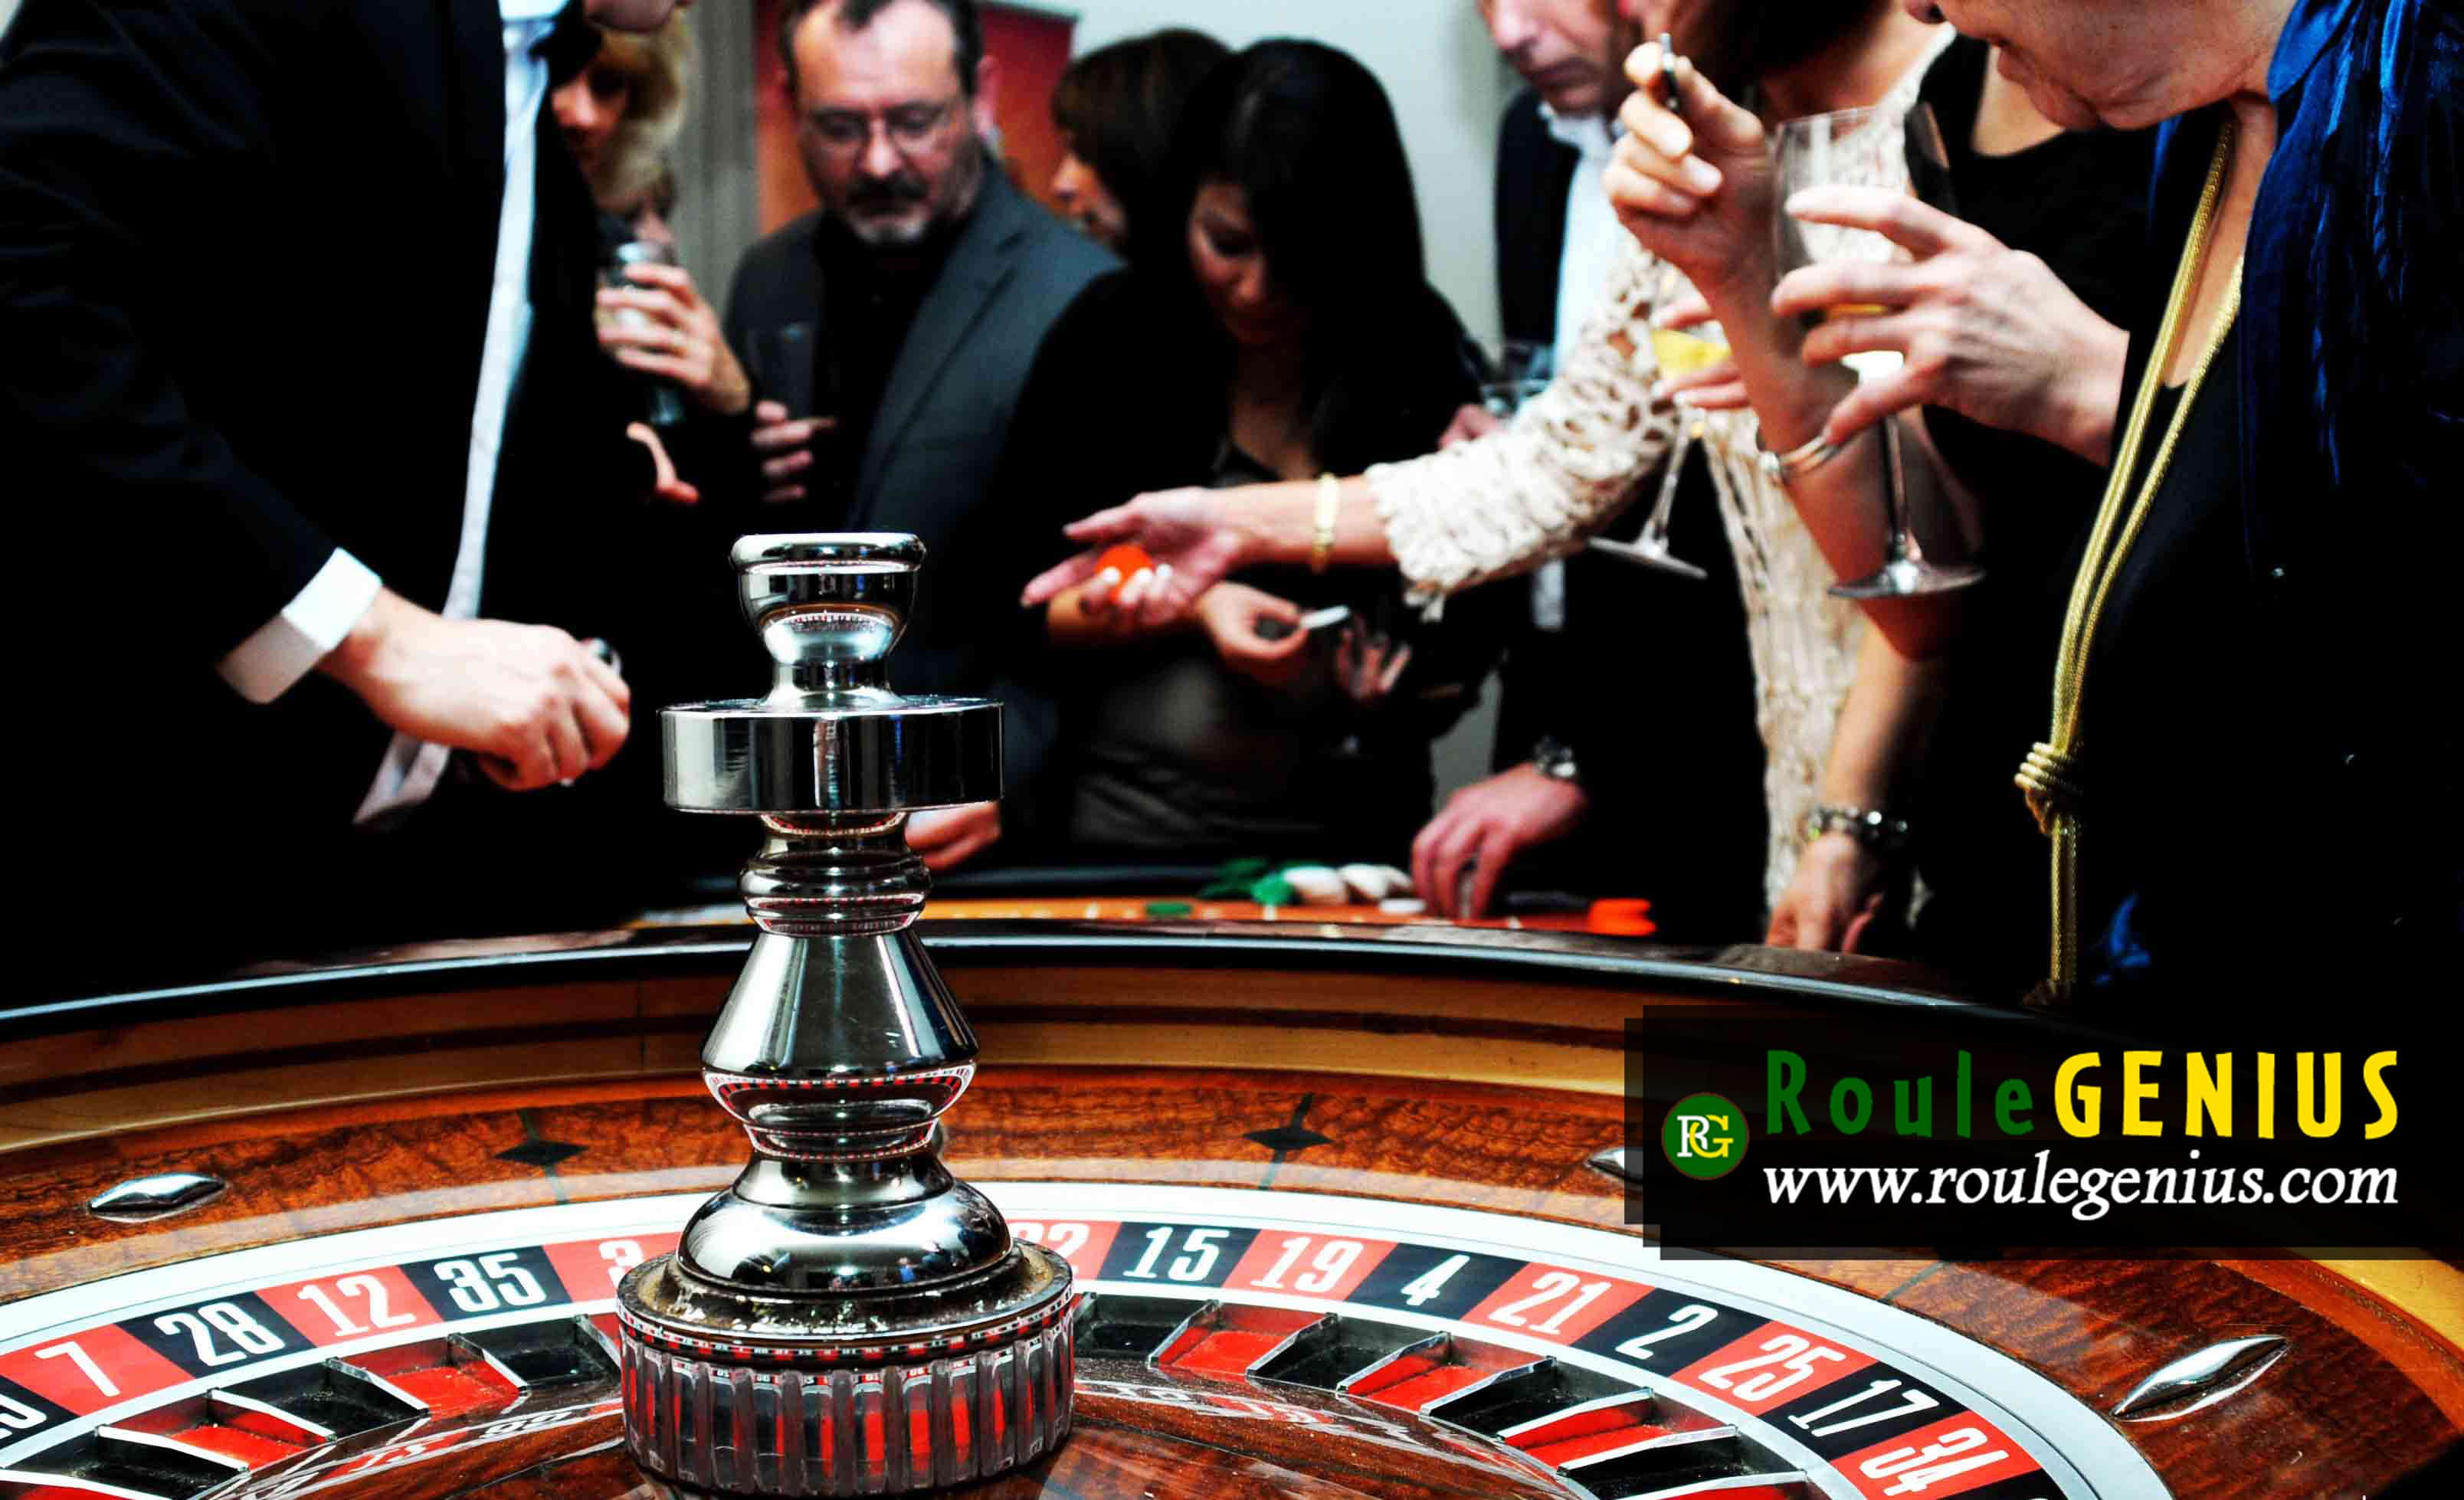 Roulette Players and Table